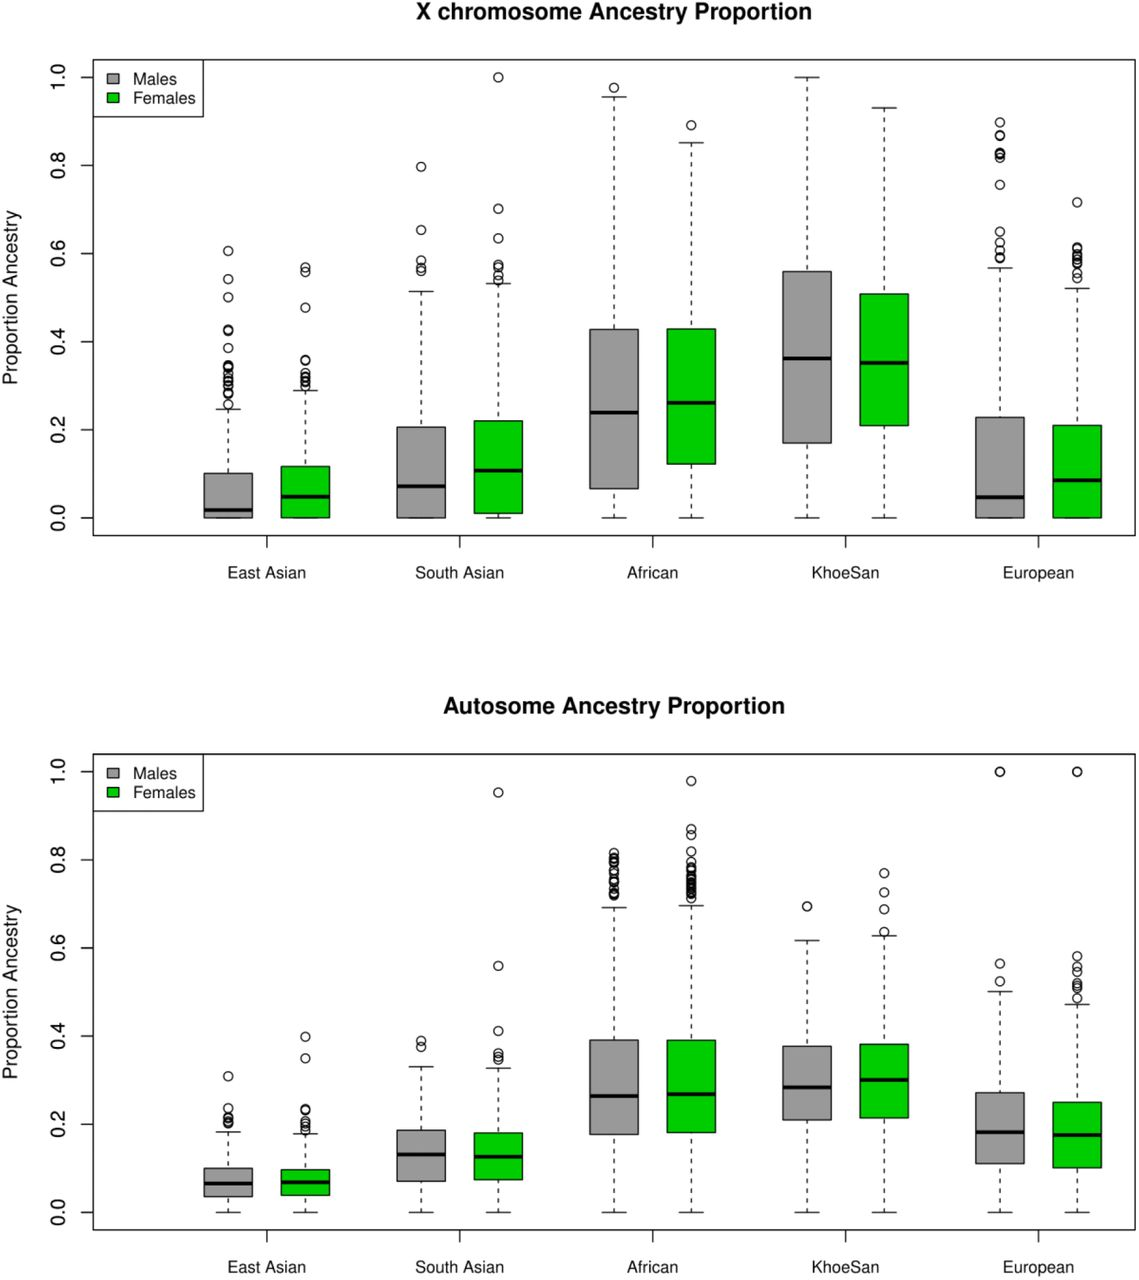 A sex-stratified genome-wide association study of tuberculosis using